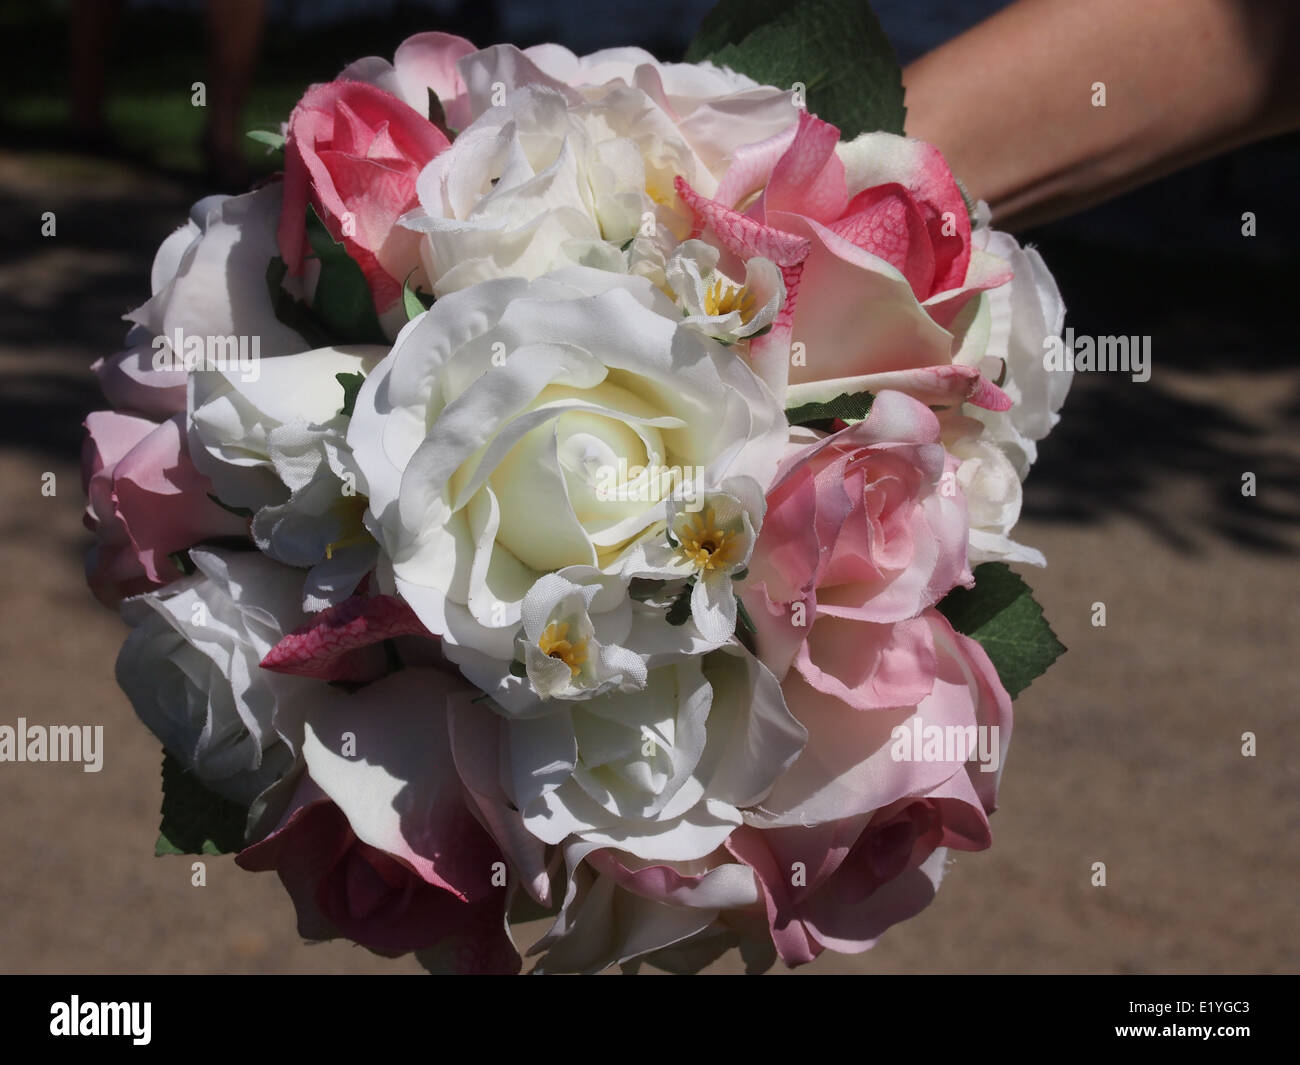 Flower bouquet white and pink Stock Photo